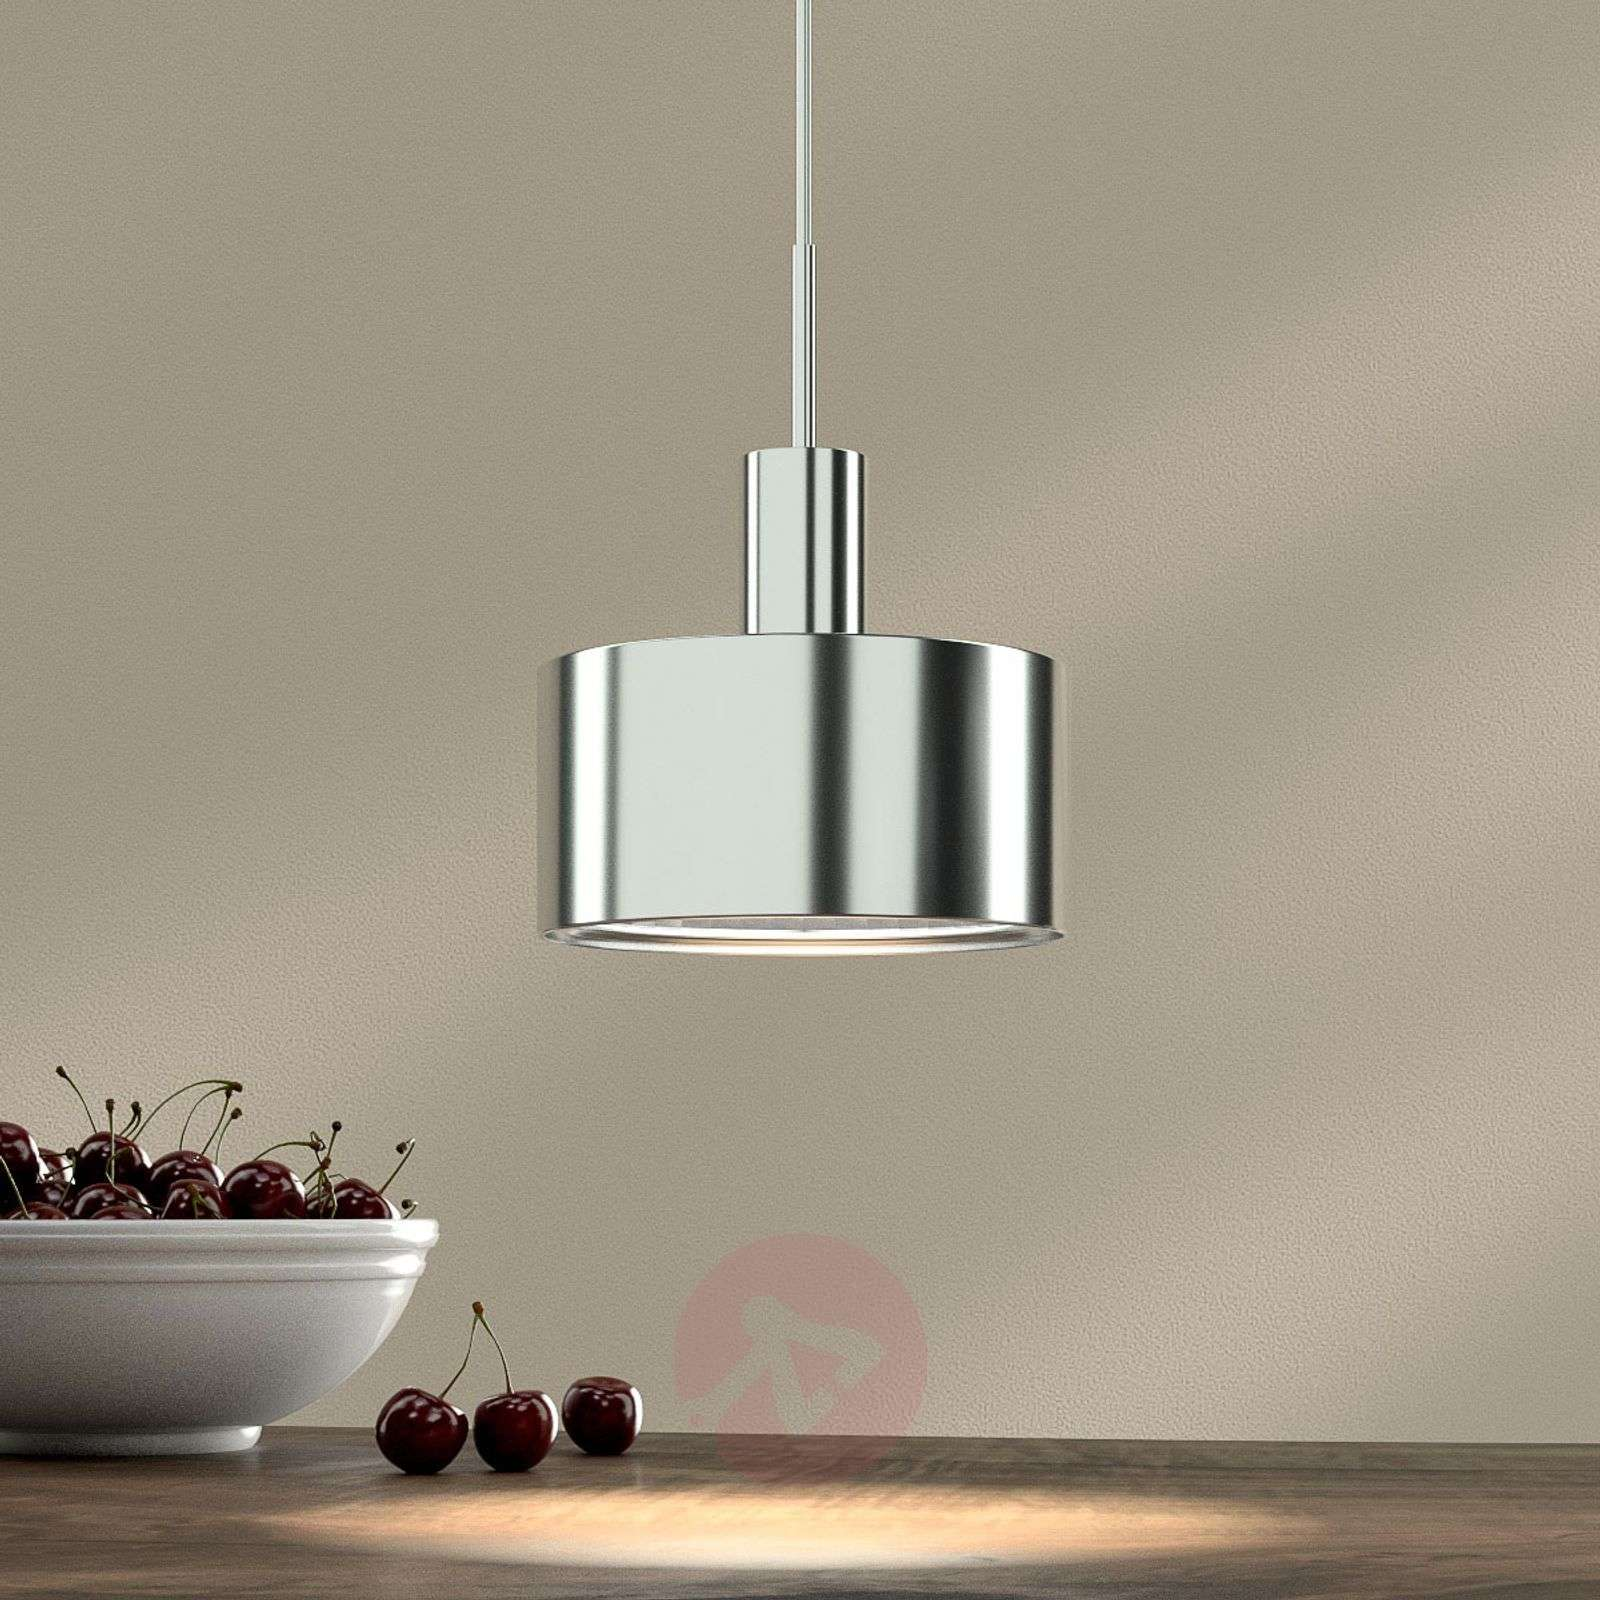 1-bulb pendant light AX20, chrome plated-1088038-01